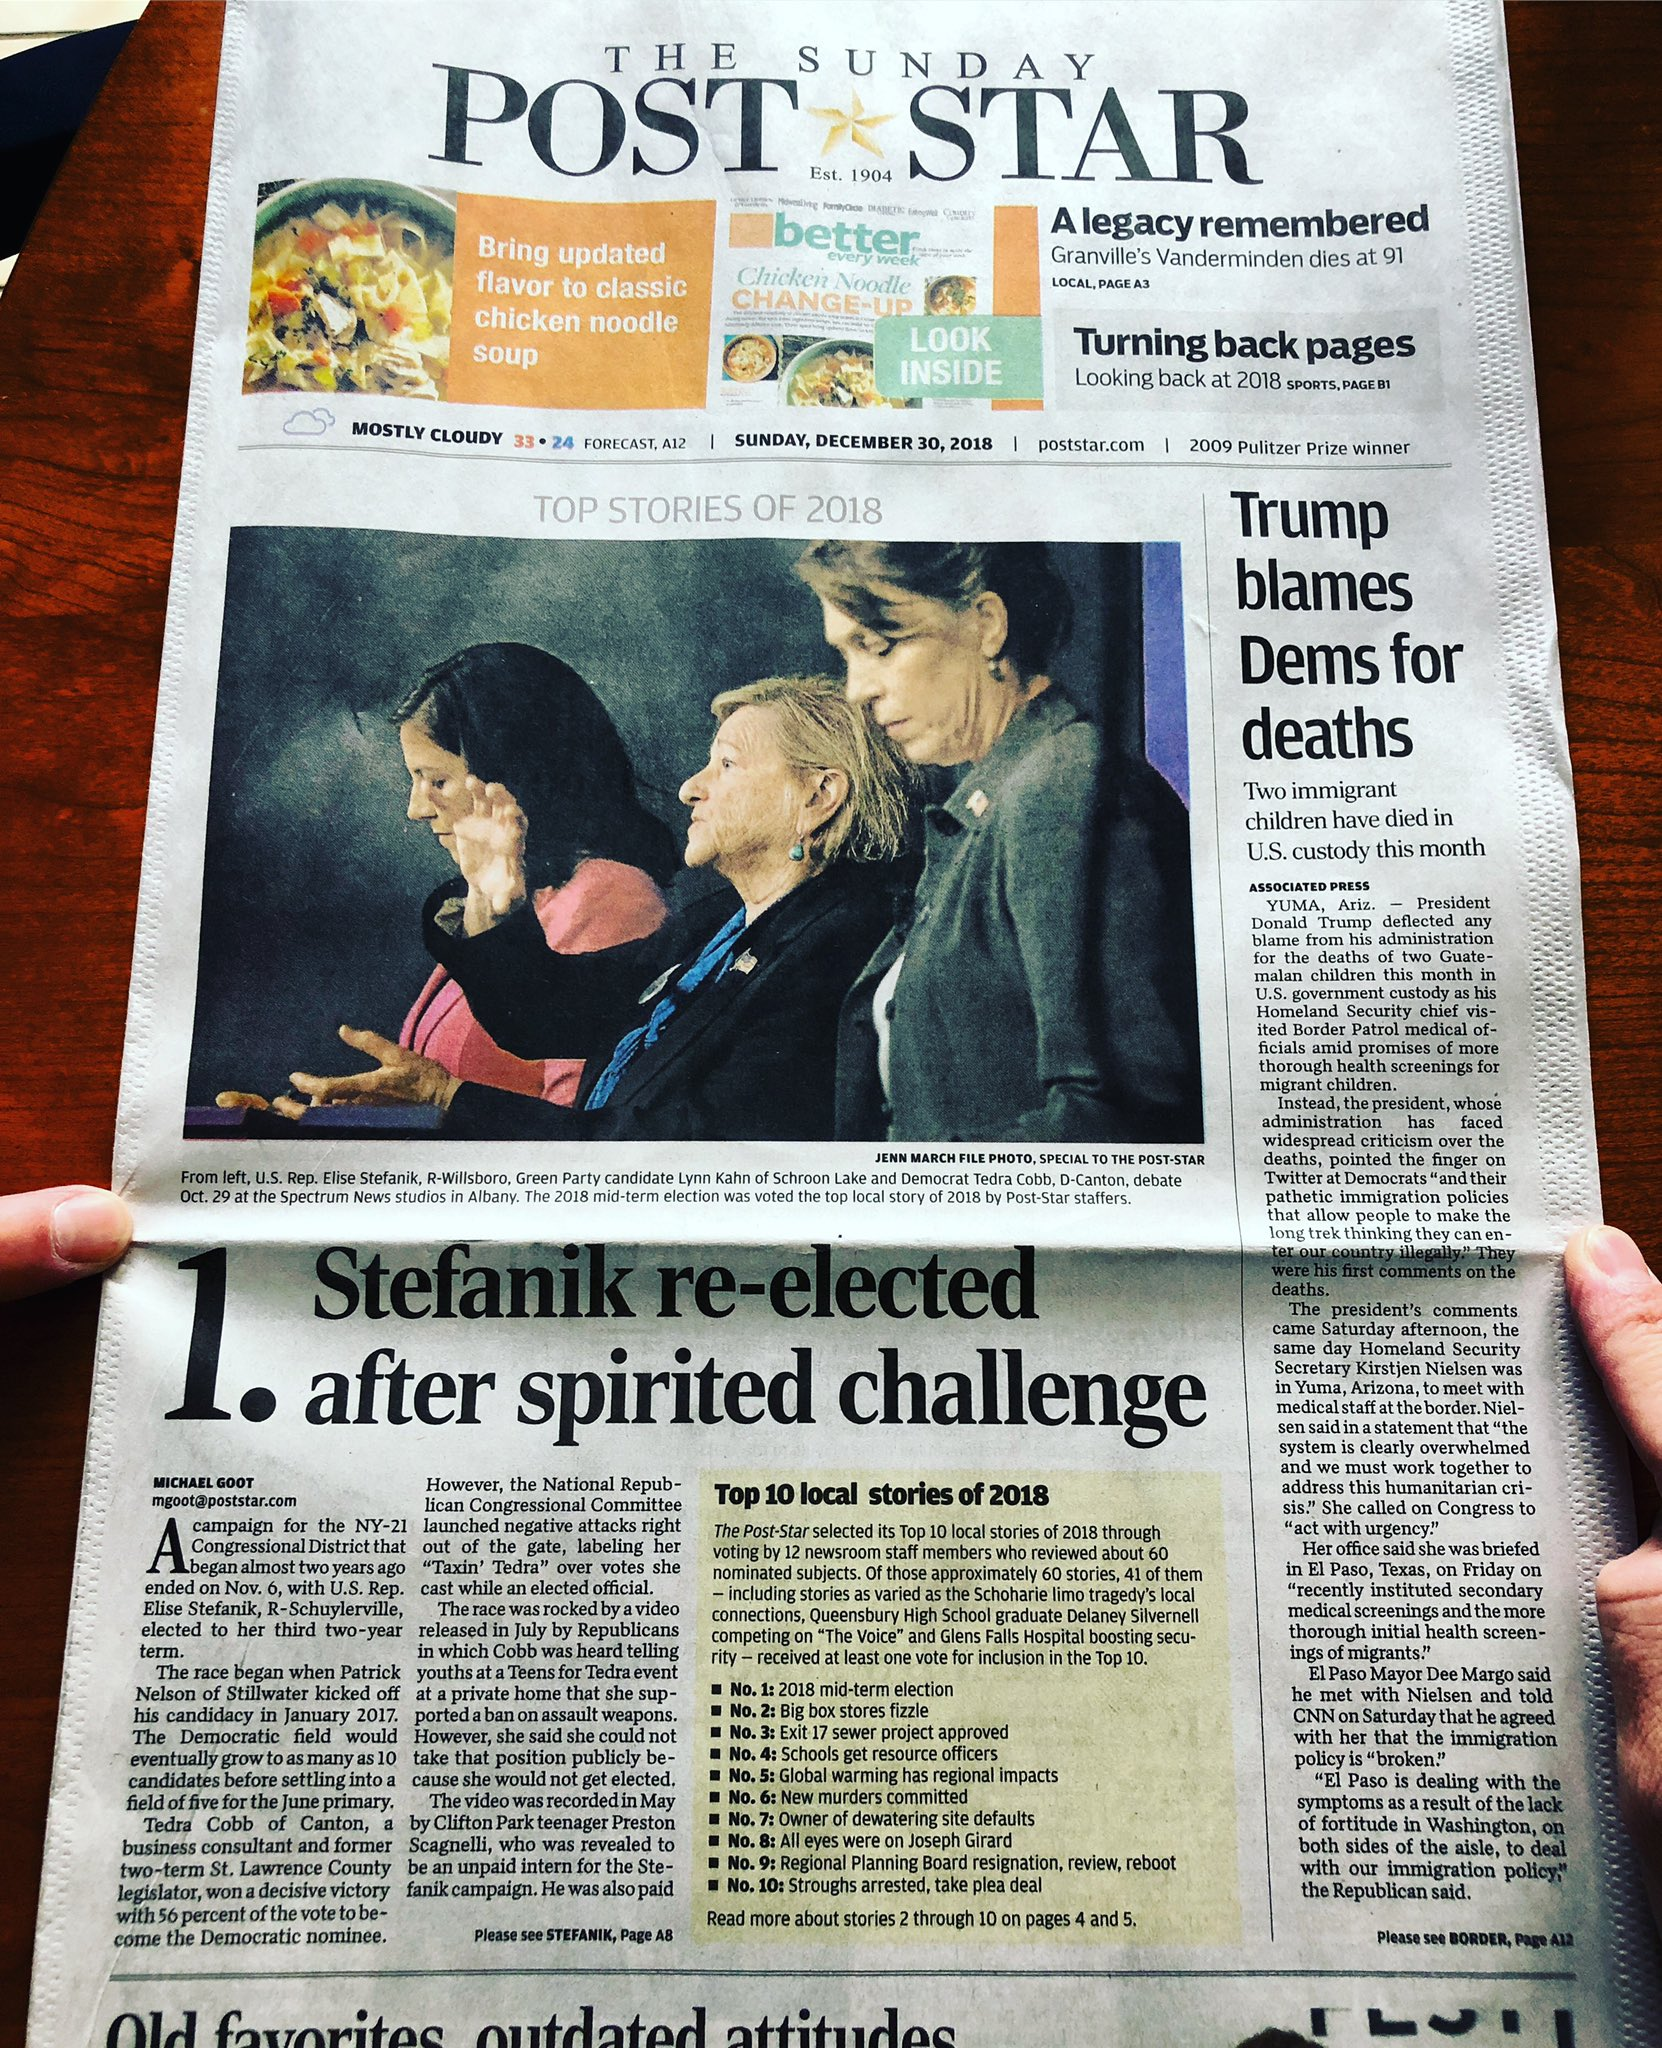 Elise Stefanik On Twitter Todays Poststar Front Page Top Story Of 2018 Thank You To The Supporters Volunteers Staff Constituents For The